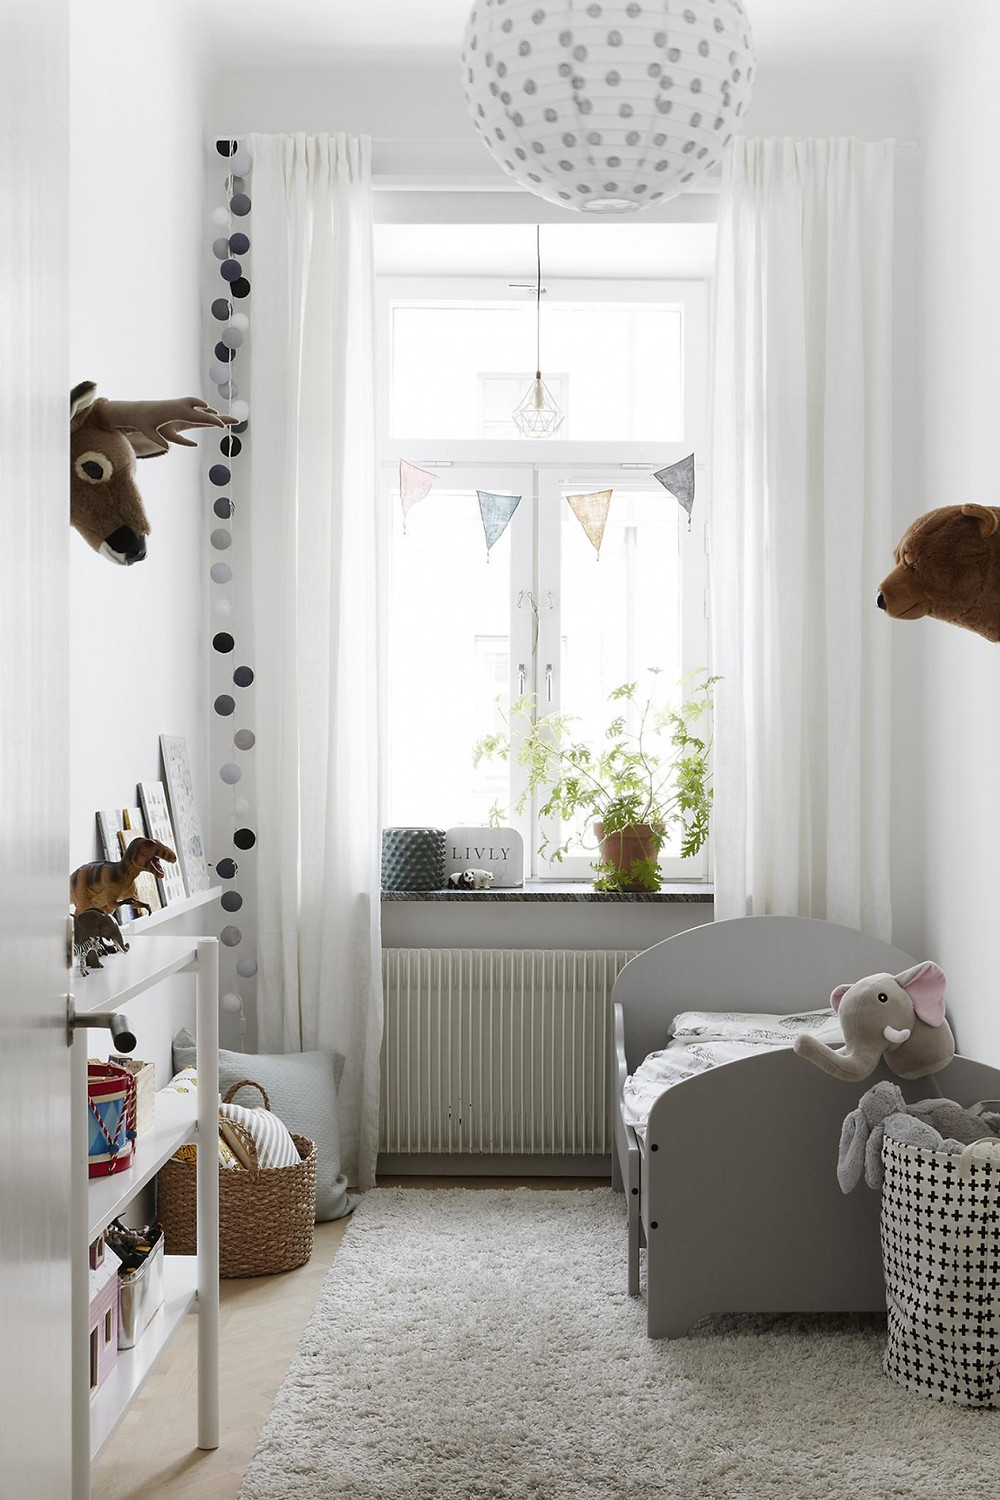 Scandinavian interior design kids room decor ideas animal trophies on wall